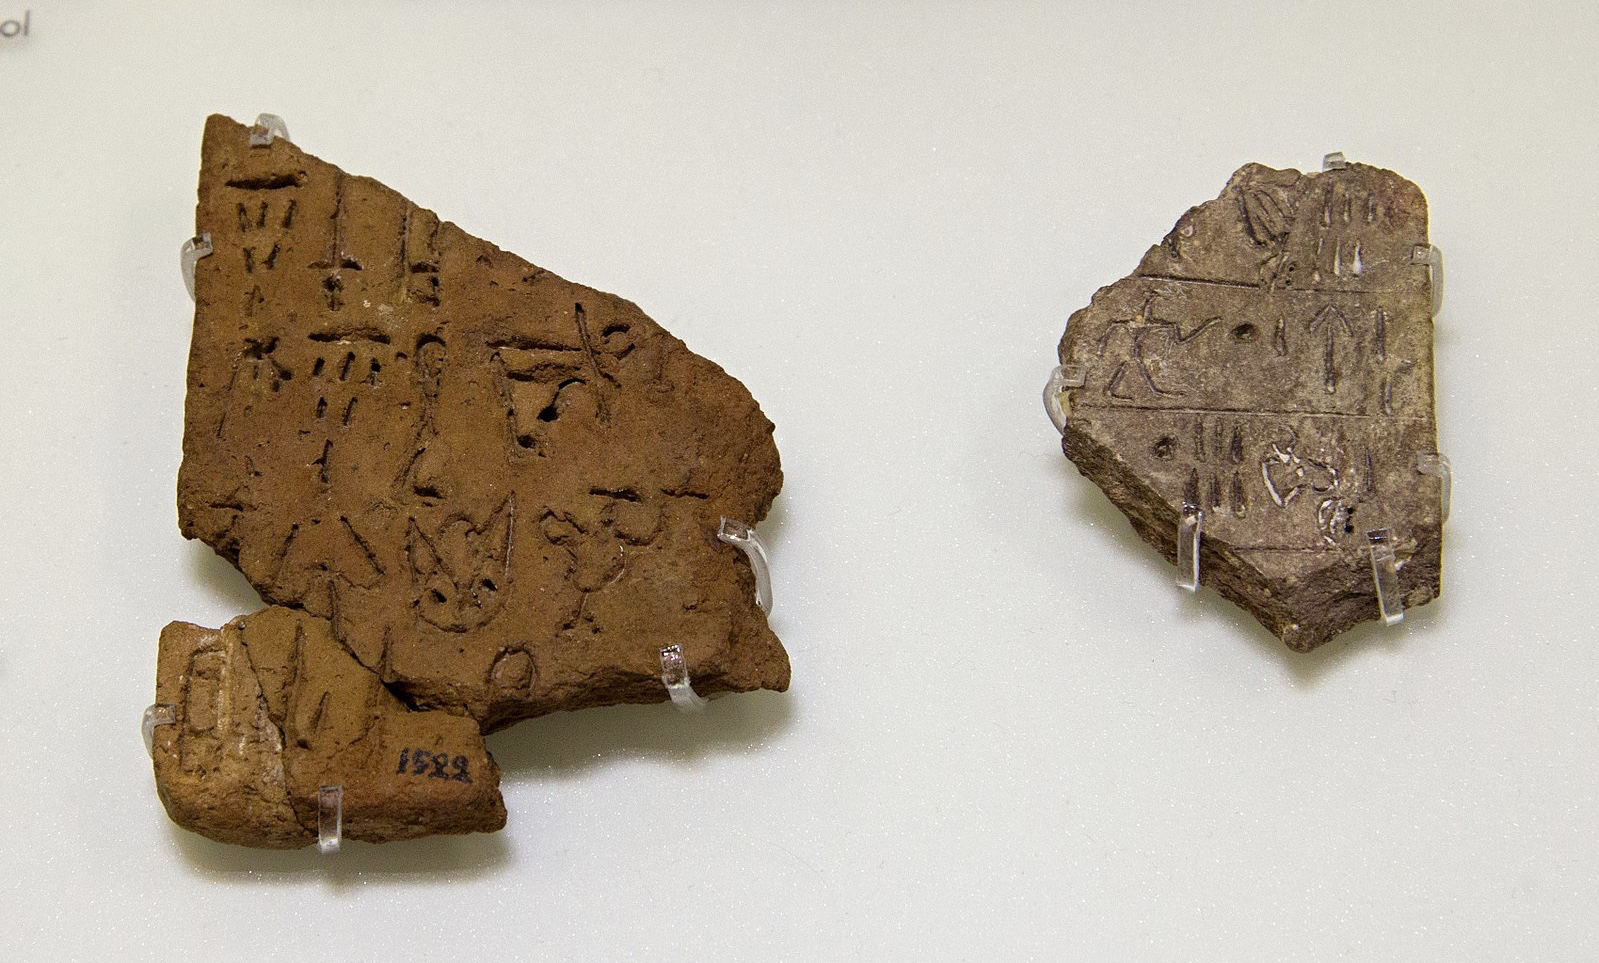 Book Review: Aegean Linear Script(s): Rethinking the Relationship between Linear A and Linear B